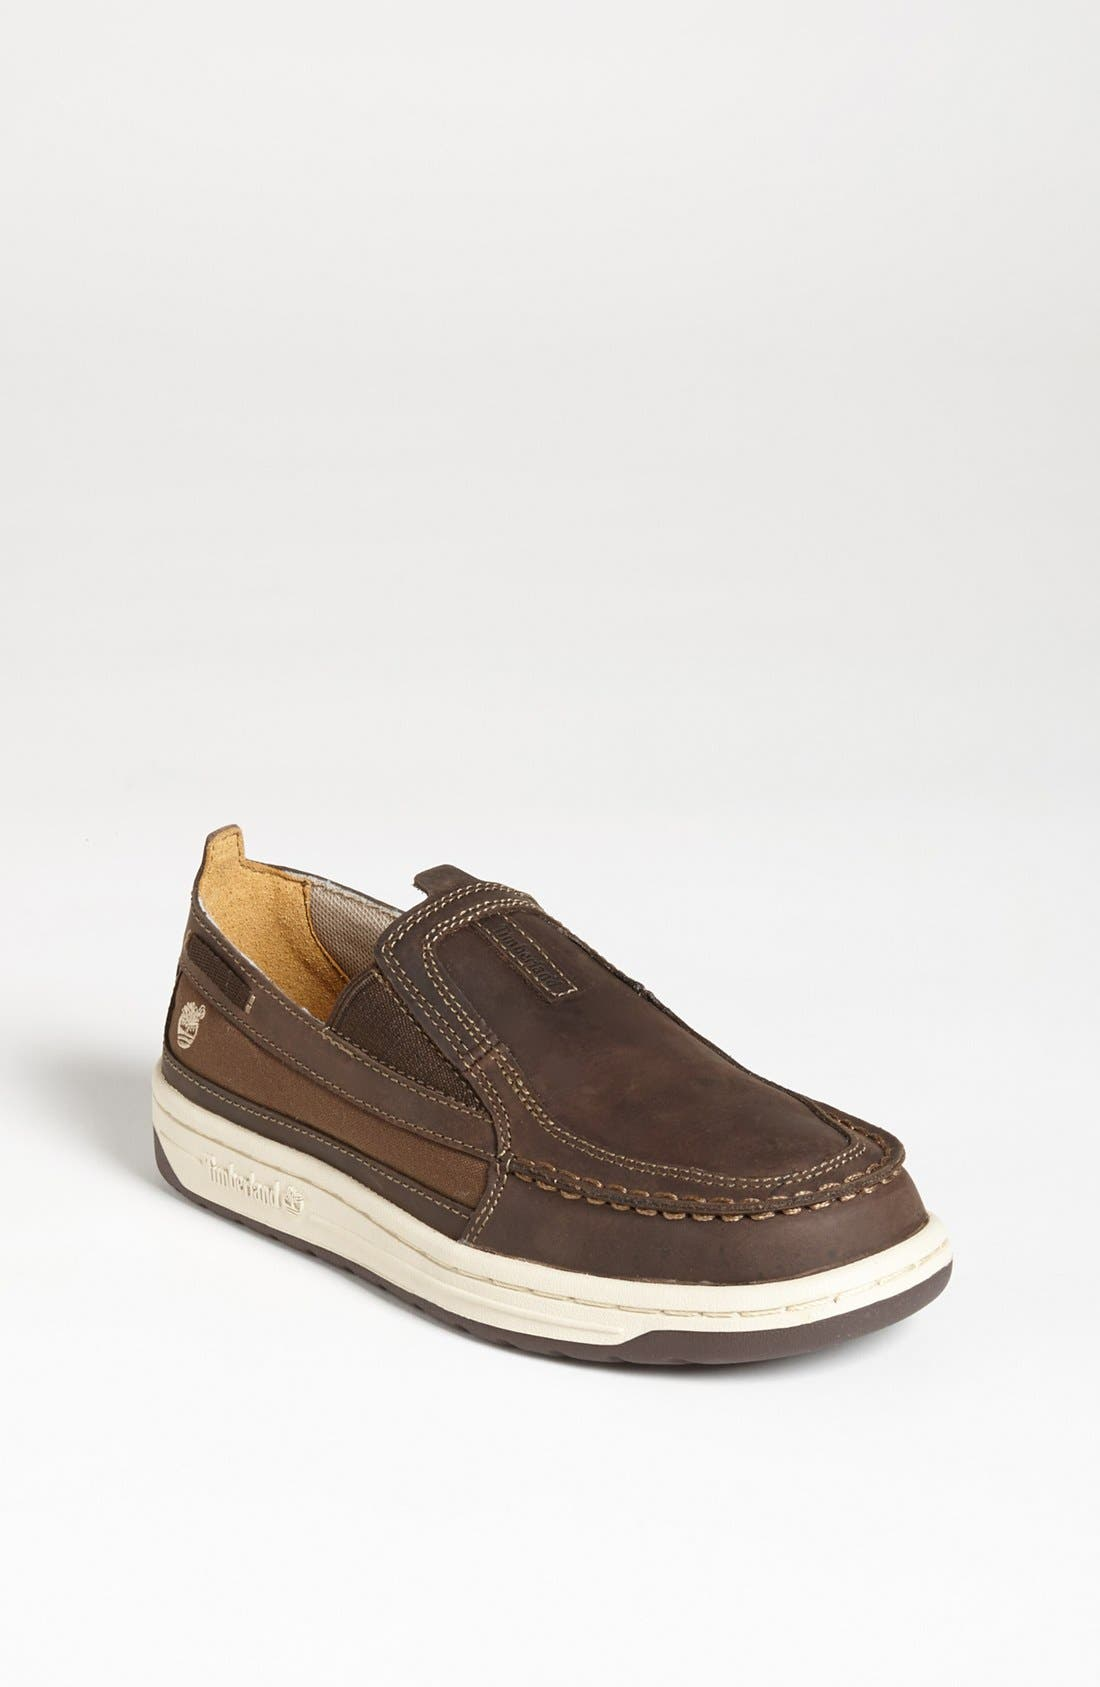 Alternate Image 1 Selected - Timberland Earthkeepers® 'Ryan' Slip-On (Walker, Toddler, Little Kid & Big Kid)